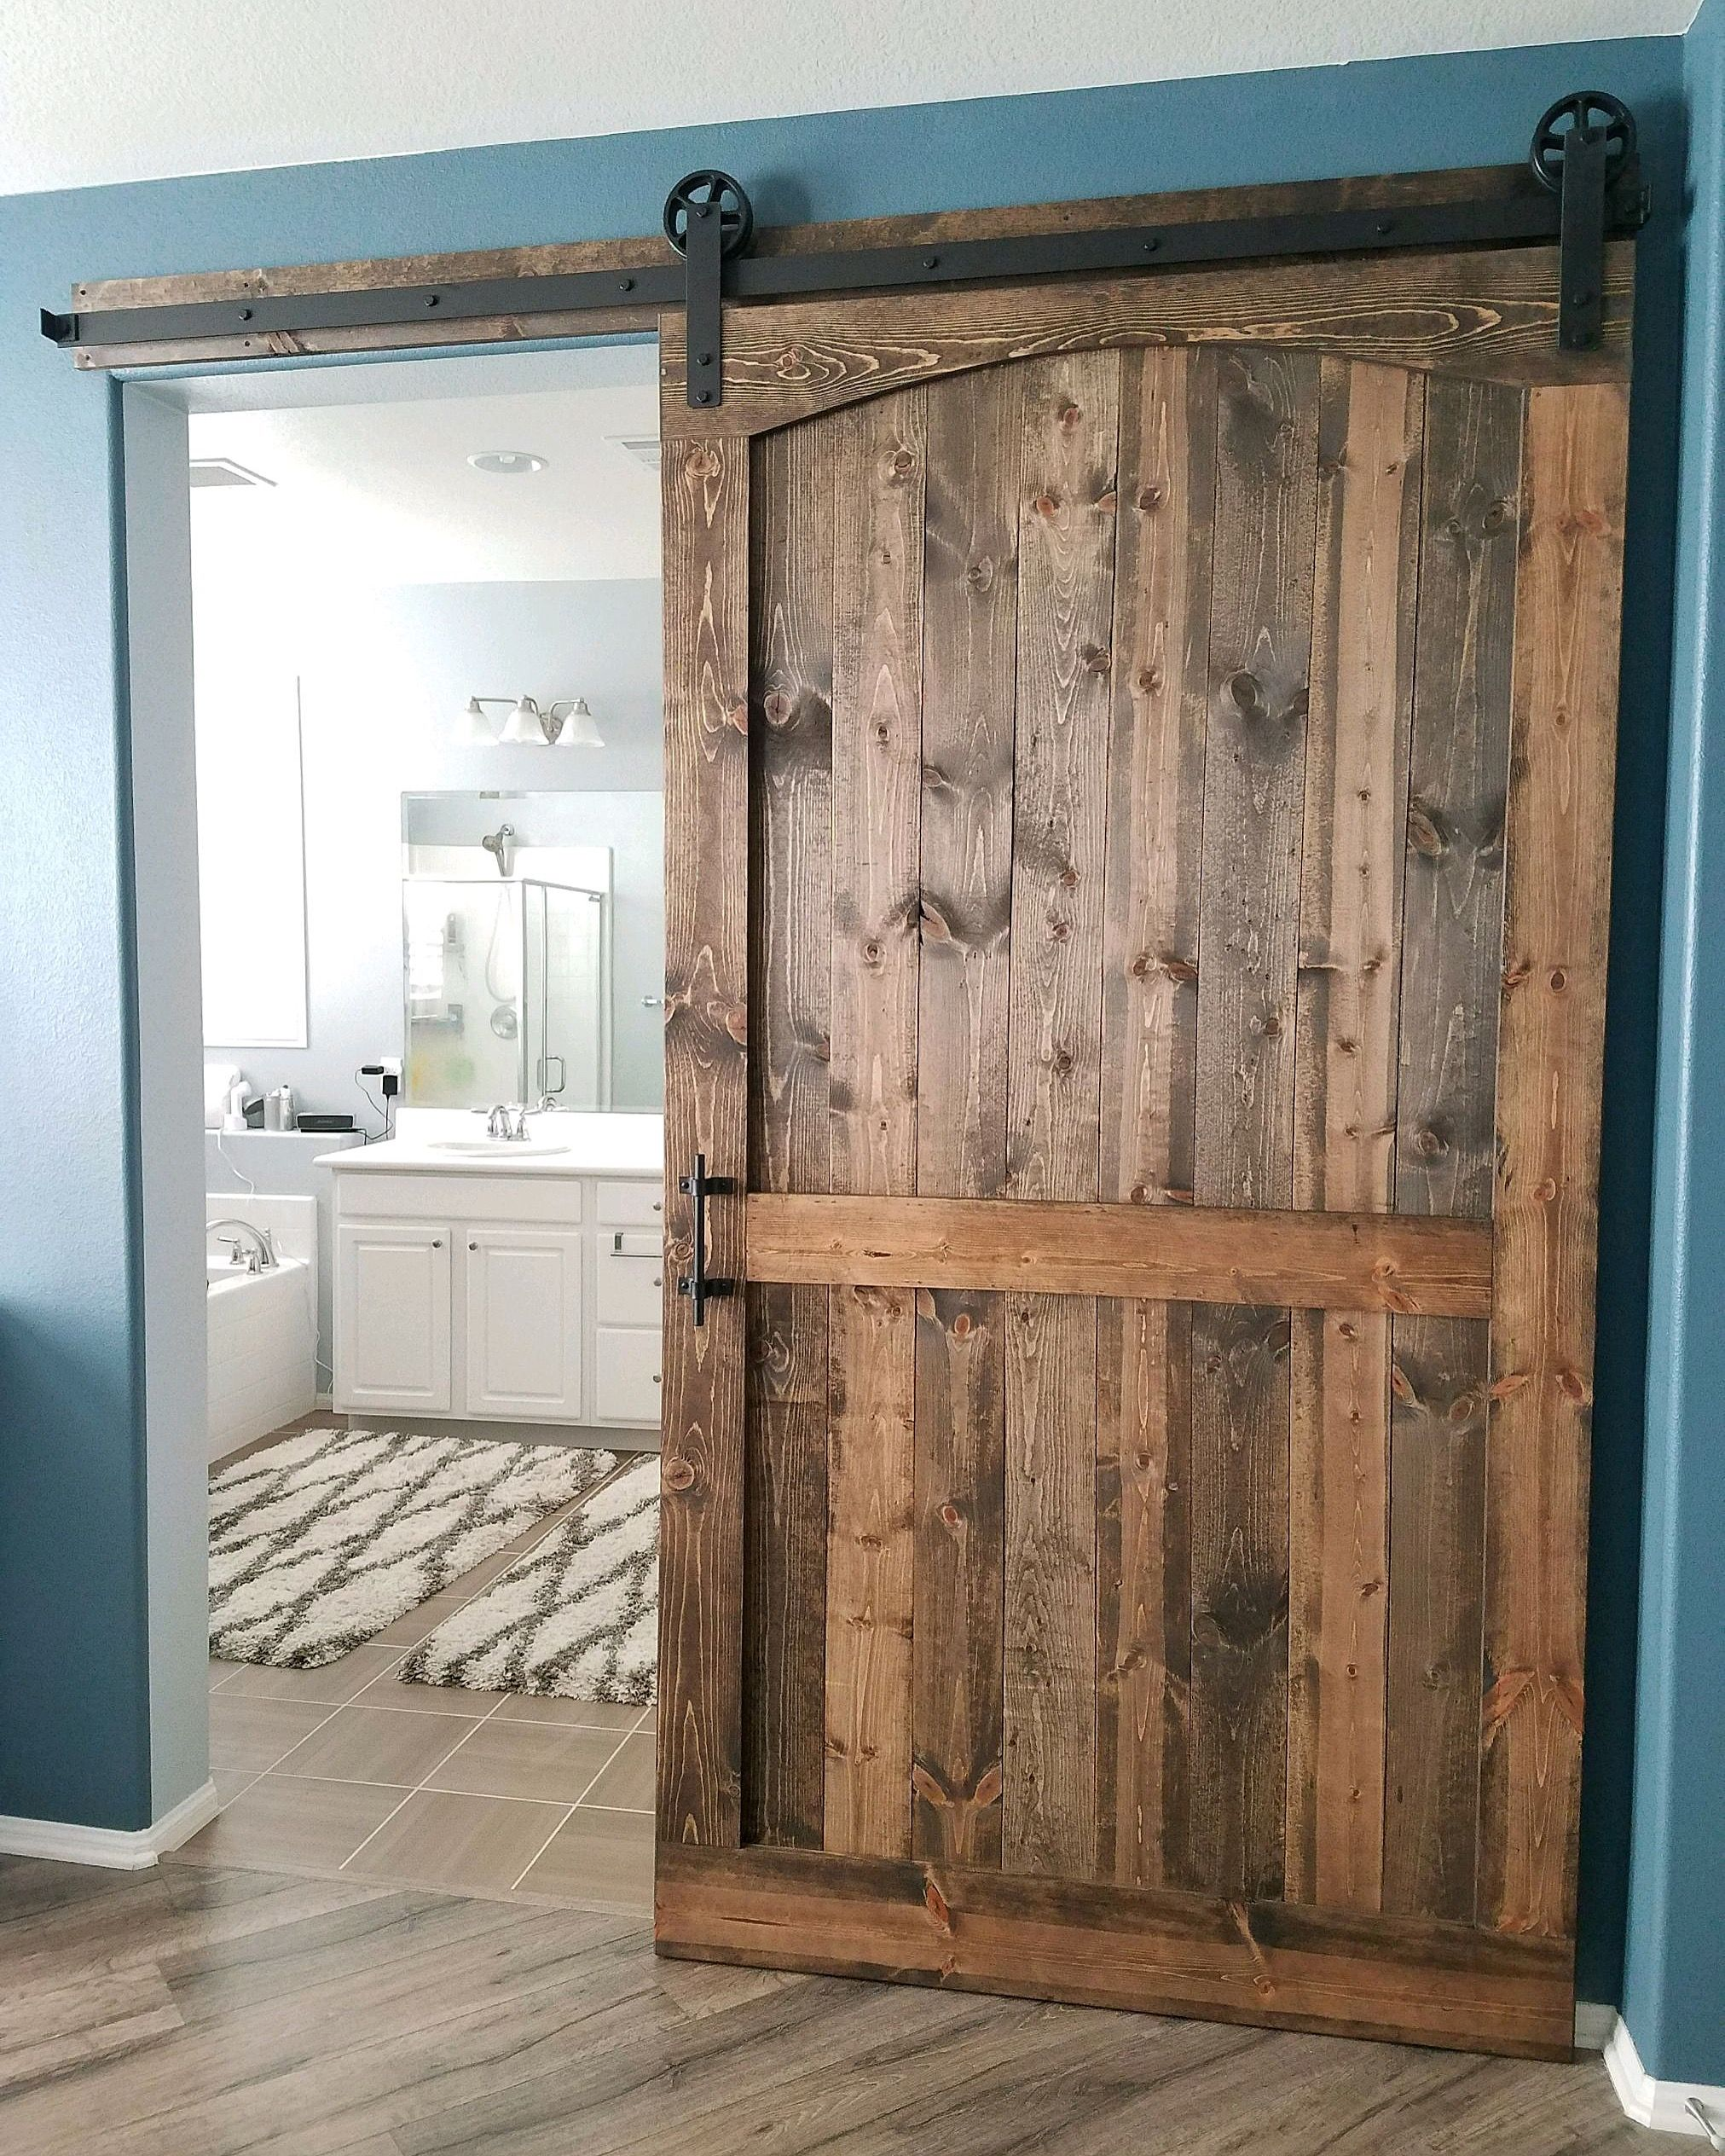 Arched Barn Door With Hardware For A Master Bedroom Bathroom Arched Barn Door Best Bathroom Designs Interior Barn Doors